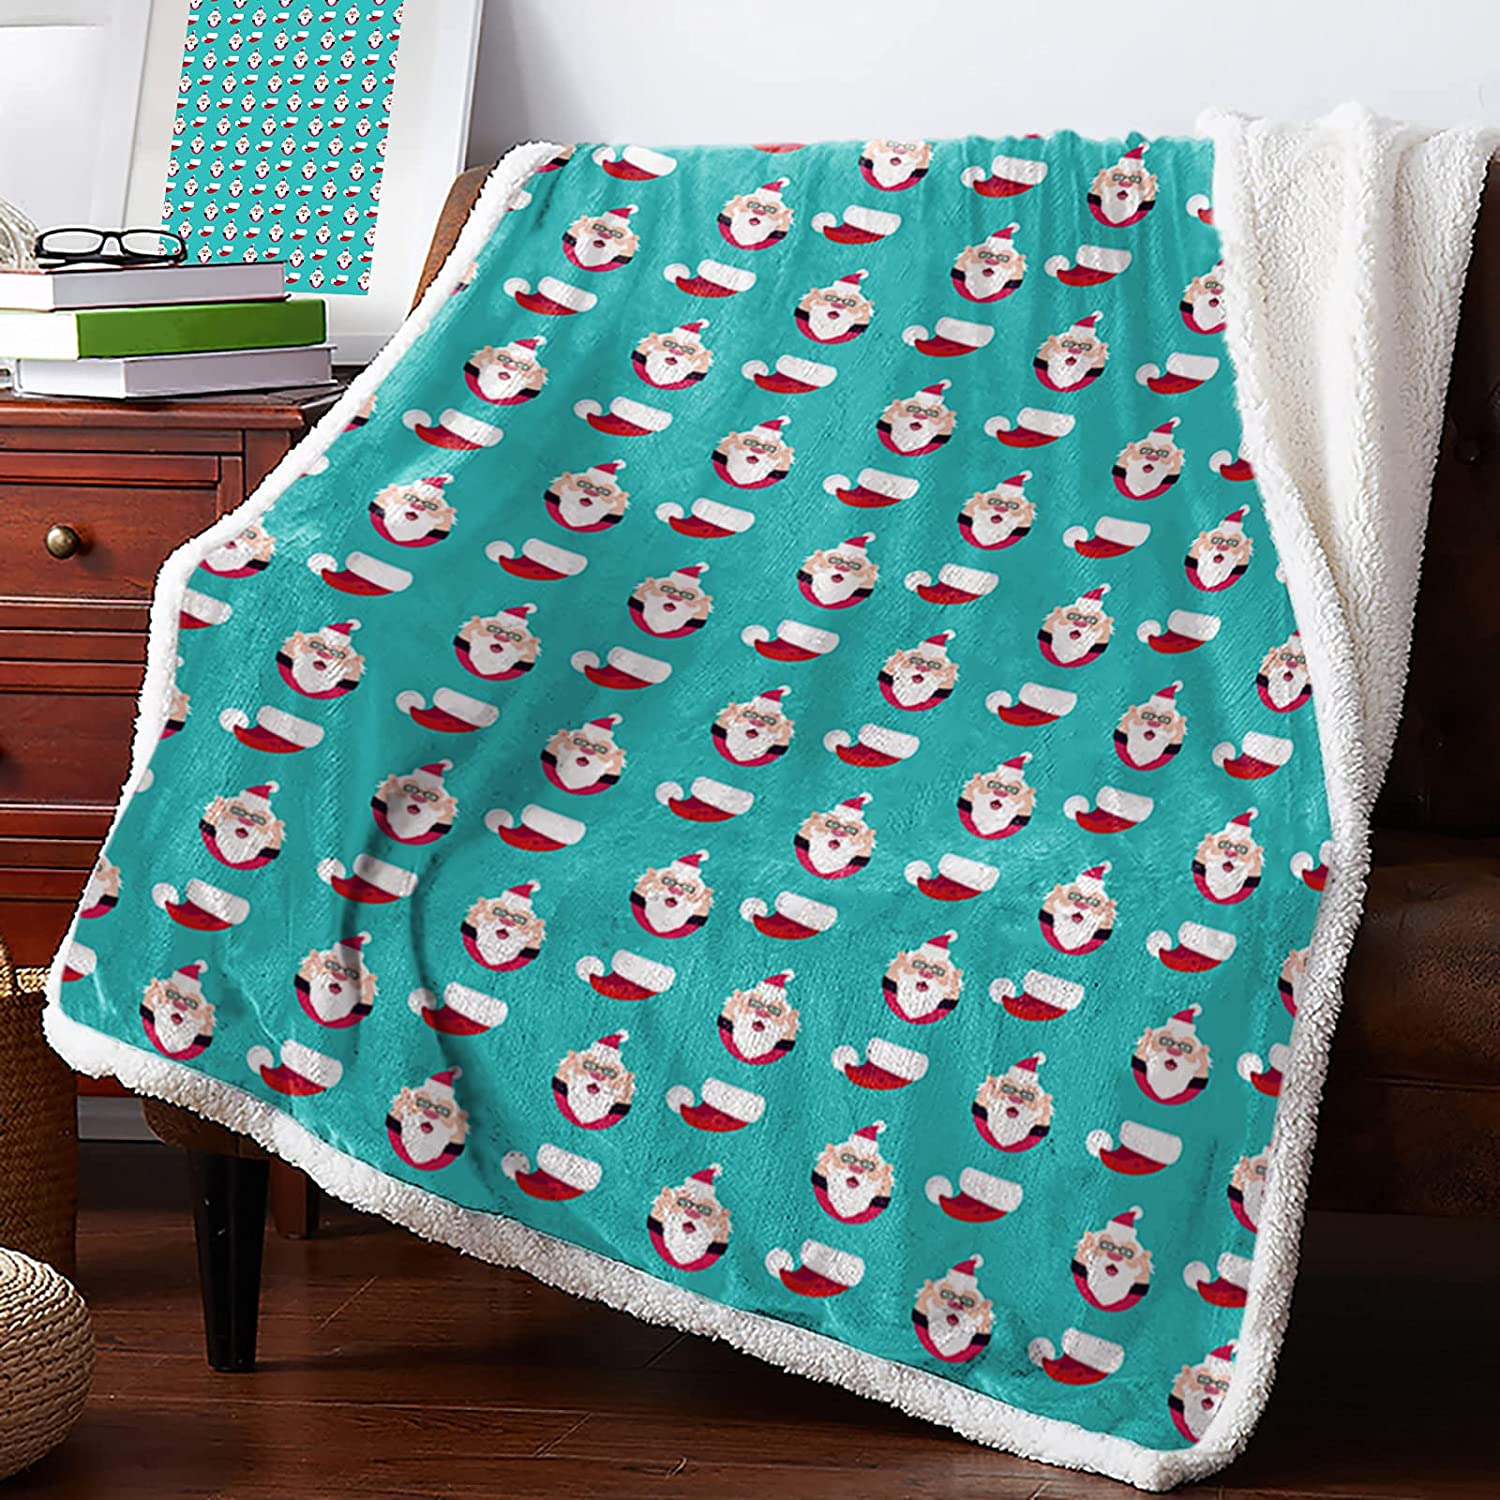 MuswannaA Sherpa Fleece Throw Max 83% OFF Blanket 70% OFF Outlet Carto Cute Christmas Merry